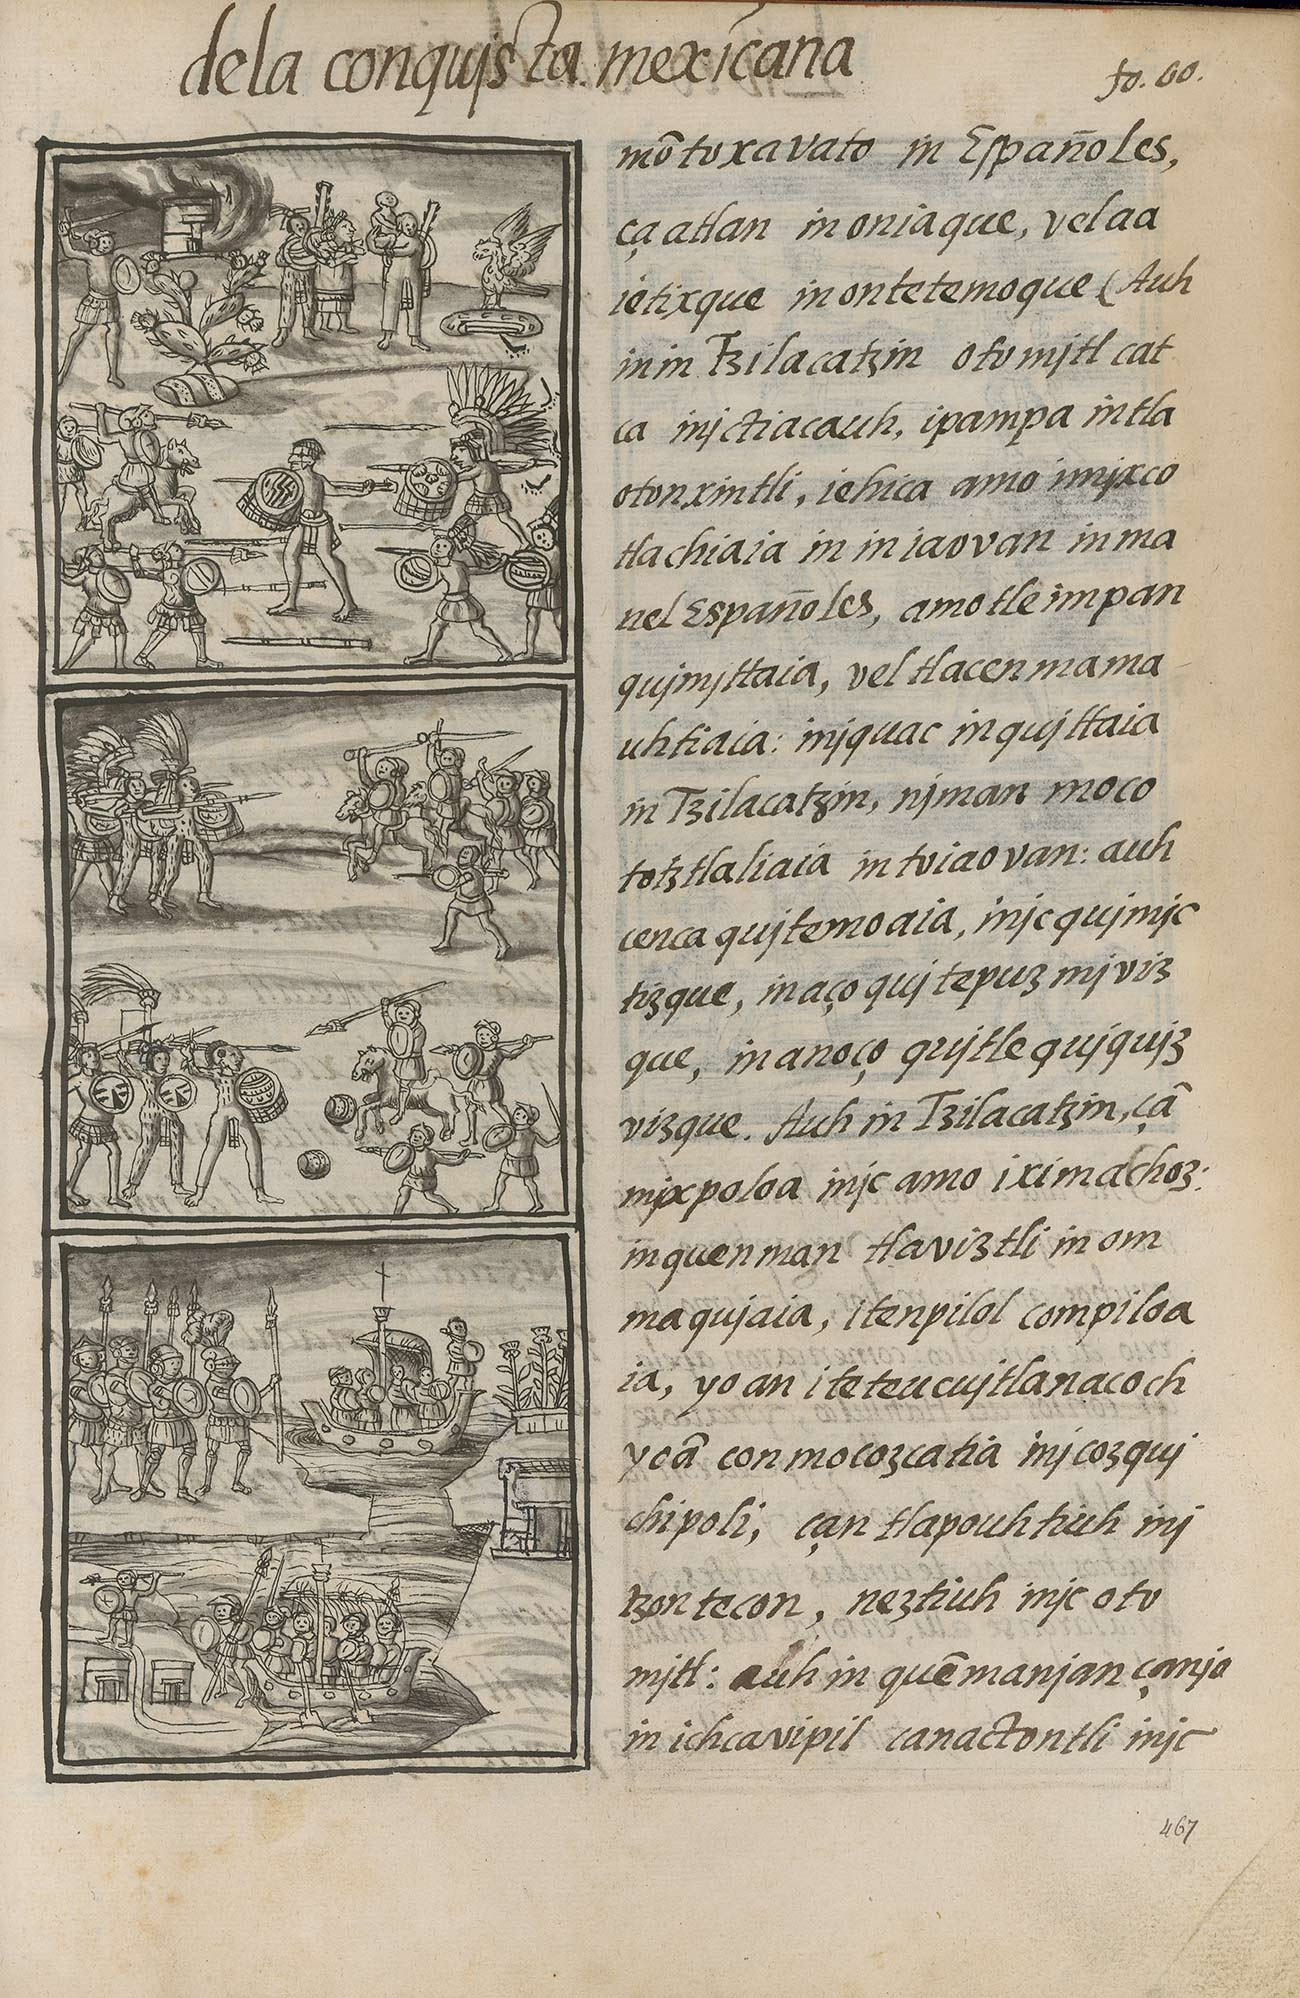 A page with text on the right and illustrations on the left of indigenous people fighting against armored people on horses and in boats.